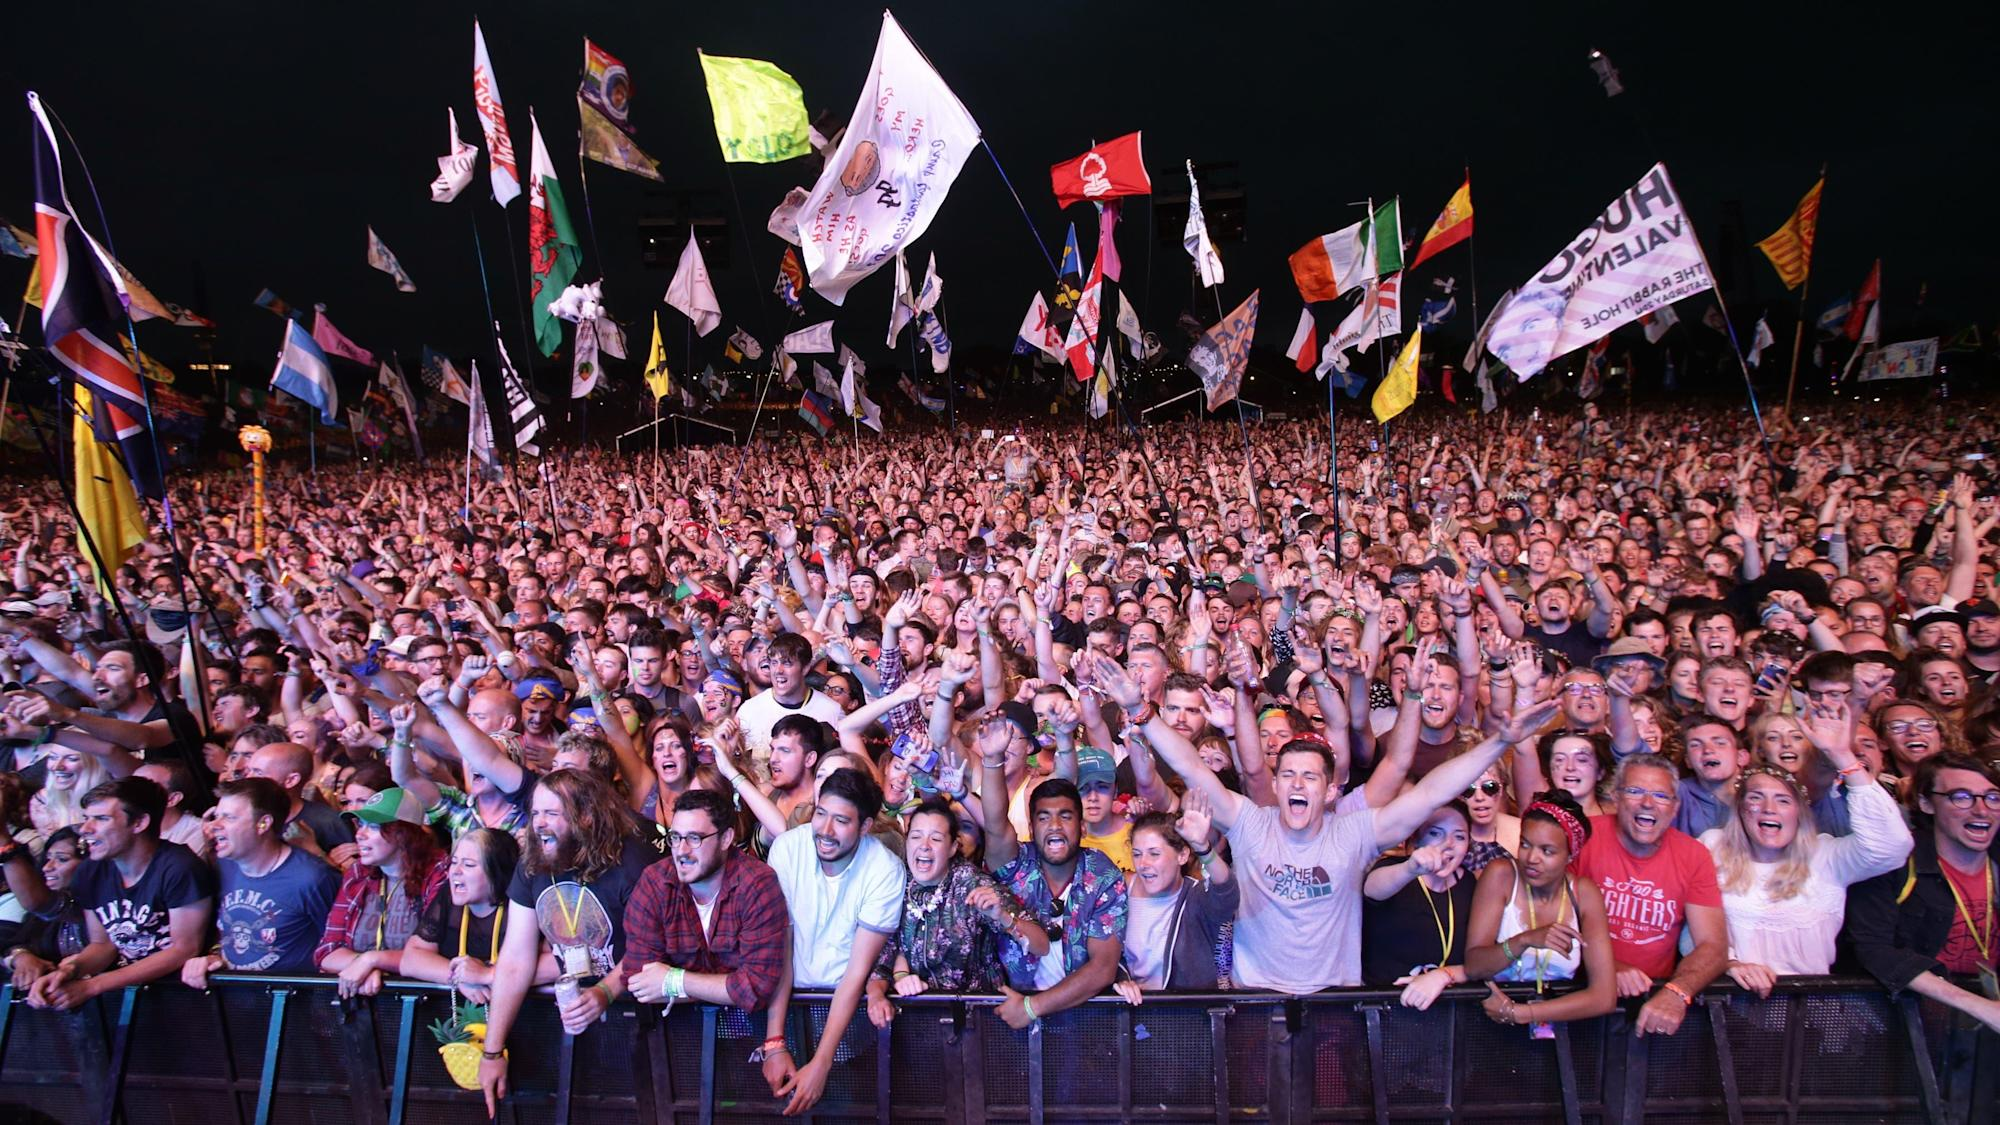 Festival season 'still possible despite the cancellation of Glastonbury'